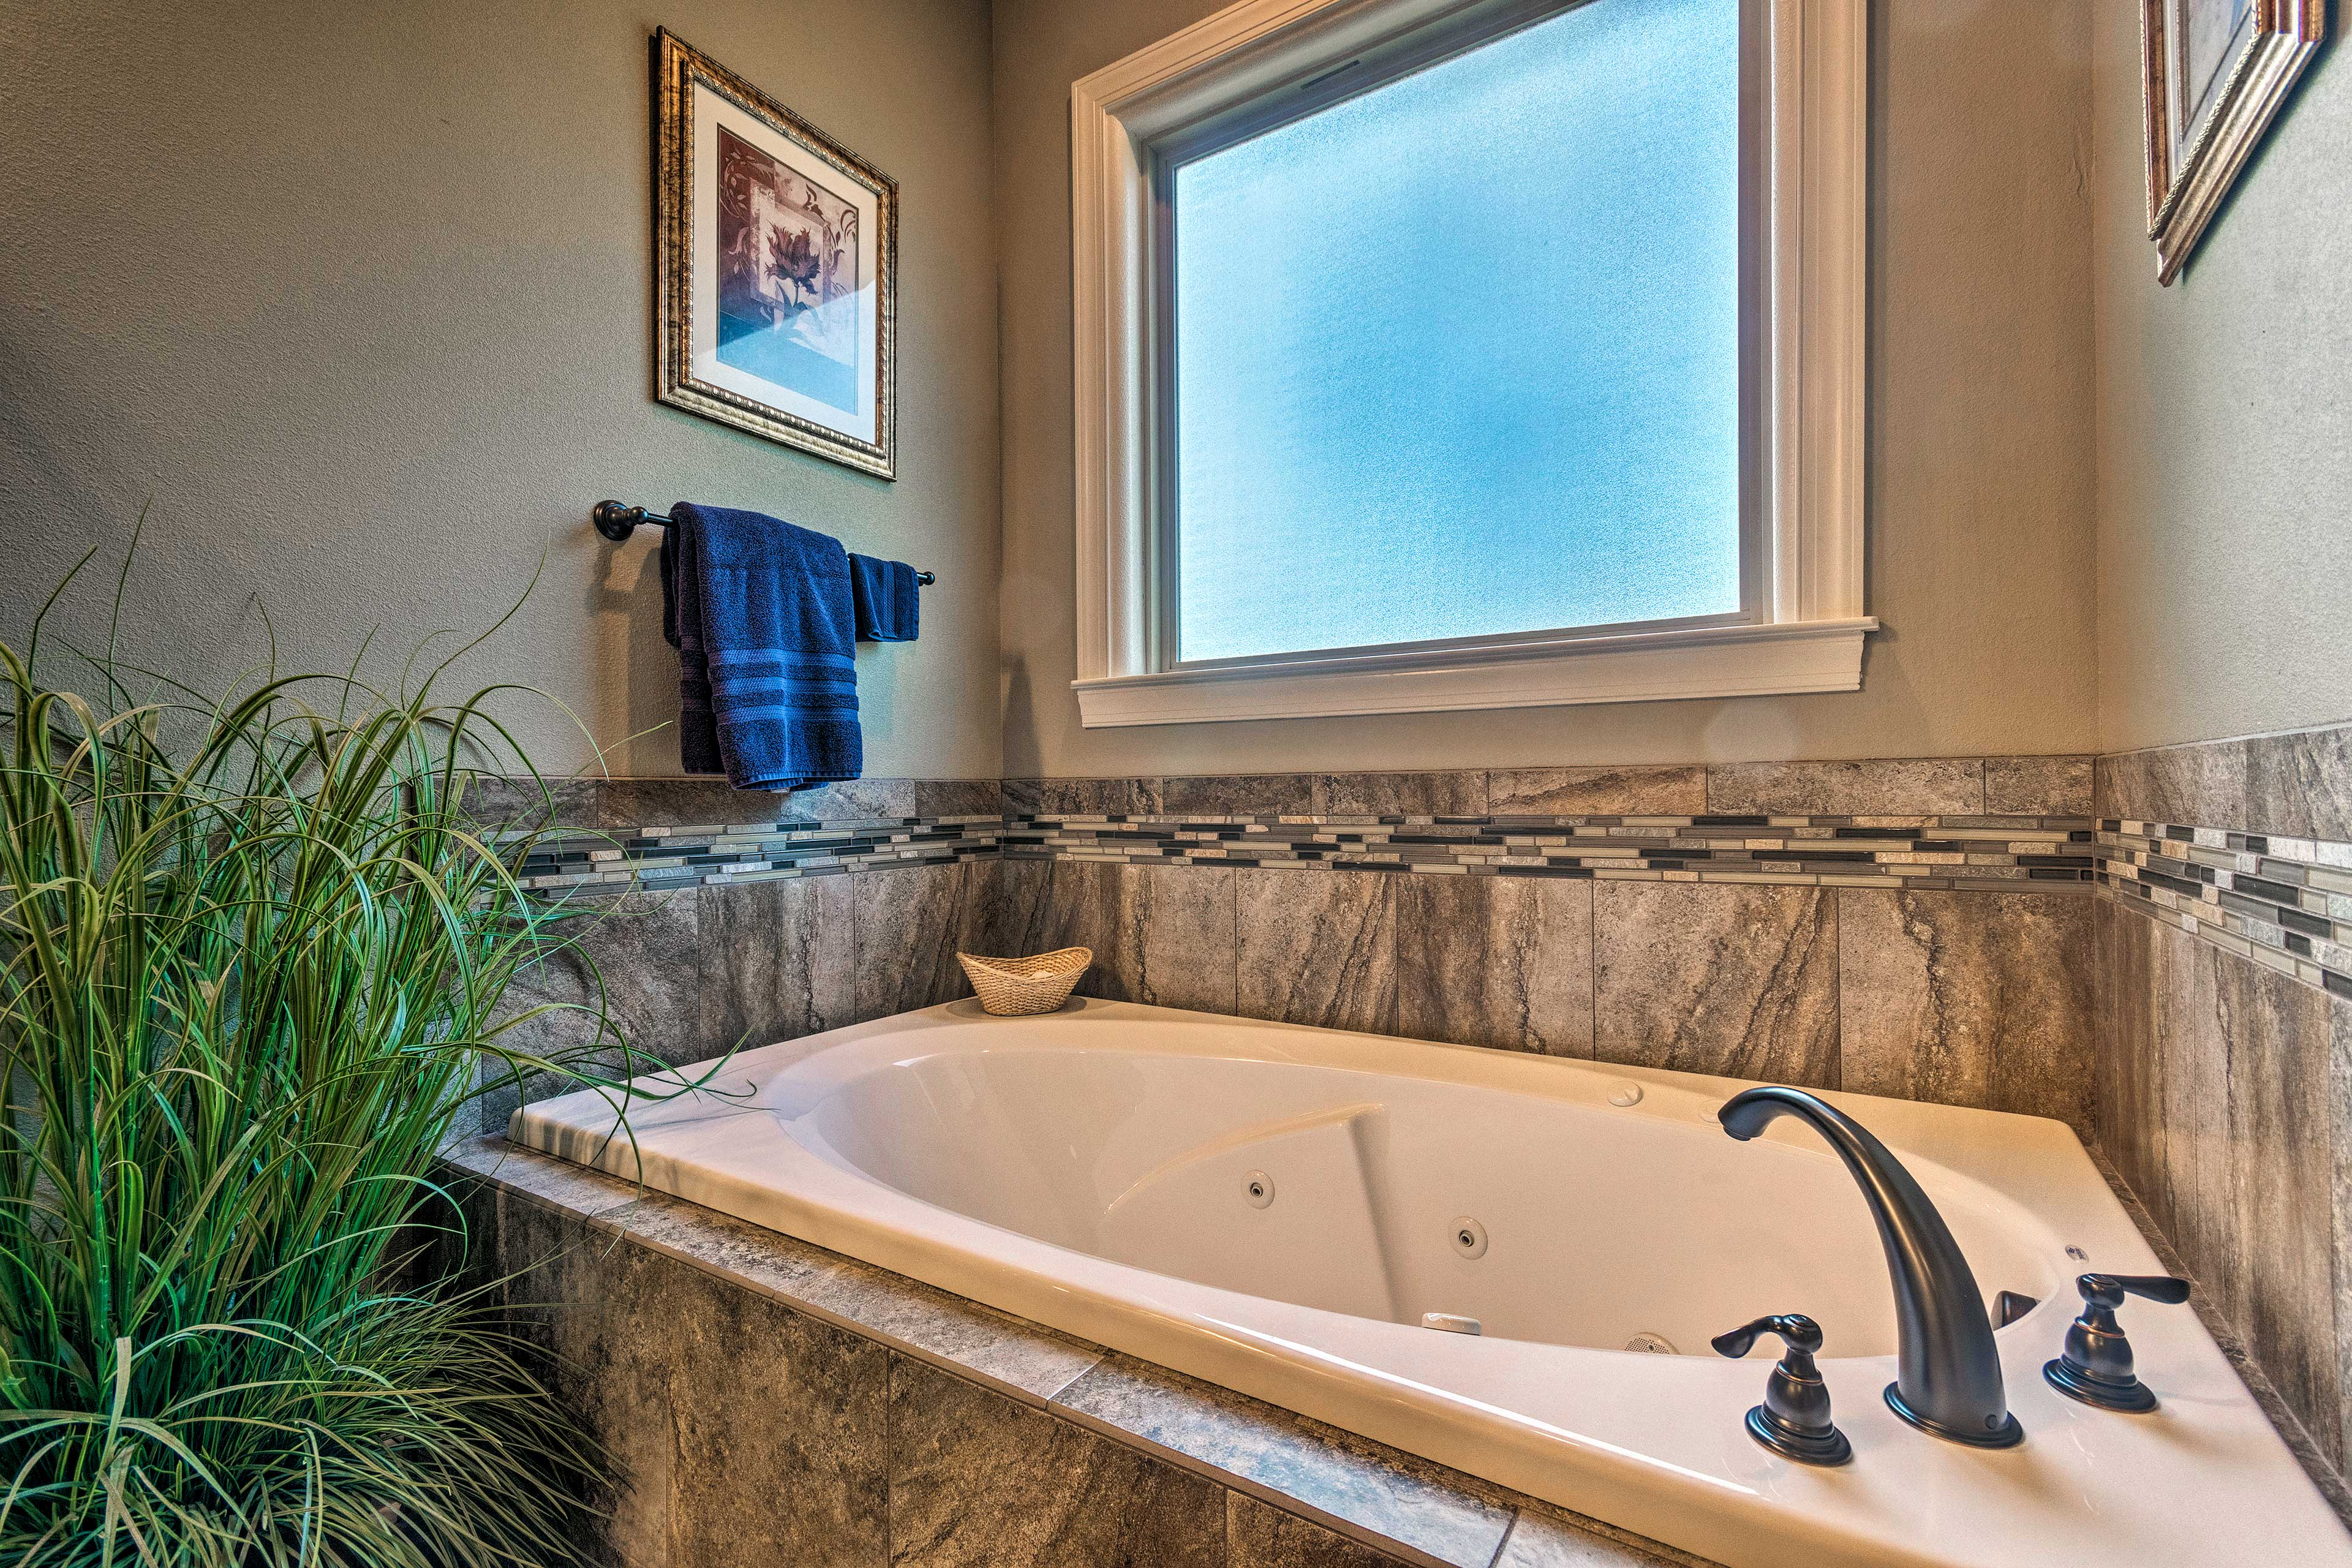 The master bathroom also features a jacuzzi tub.